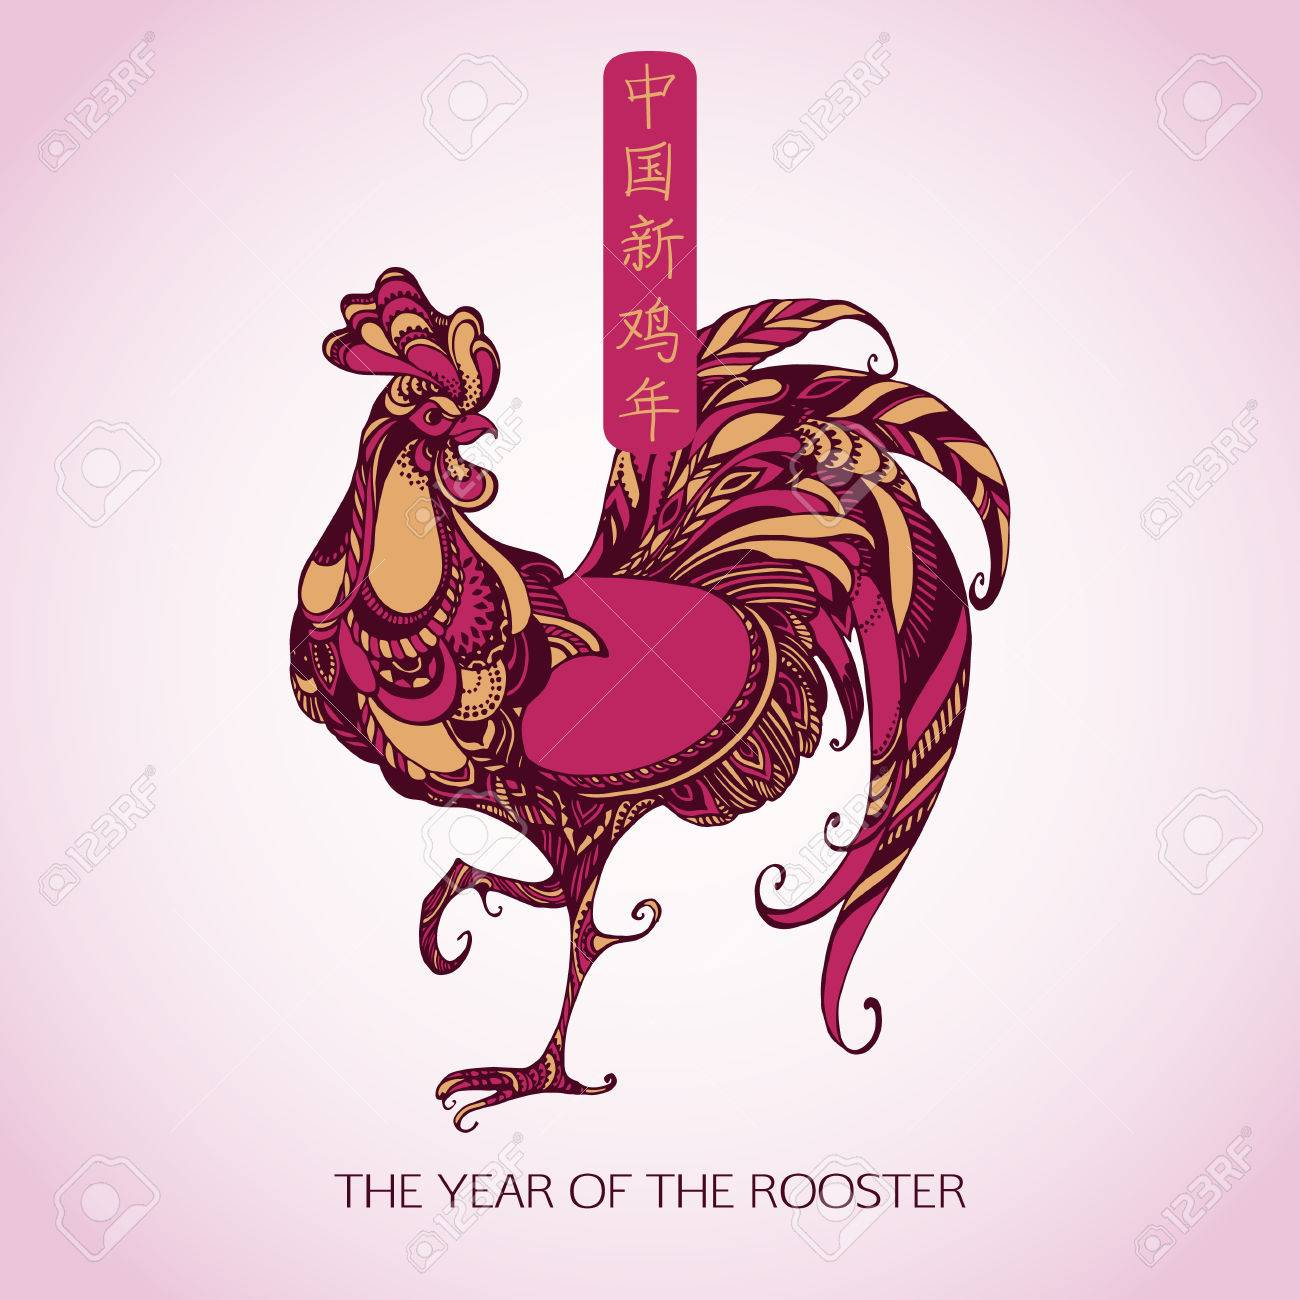 Happy Chinese New Year 2017 Rooster Greeting Card  Hieroglyph